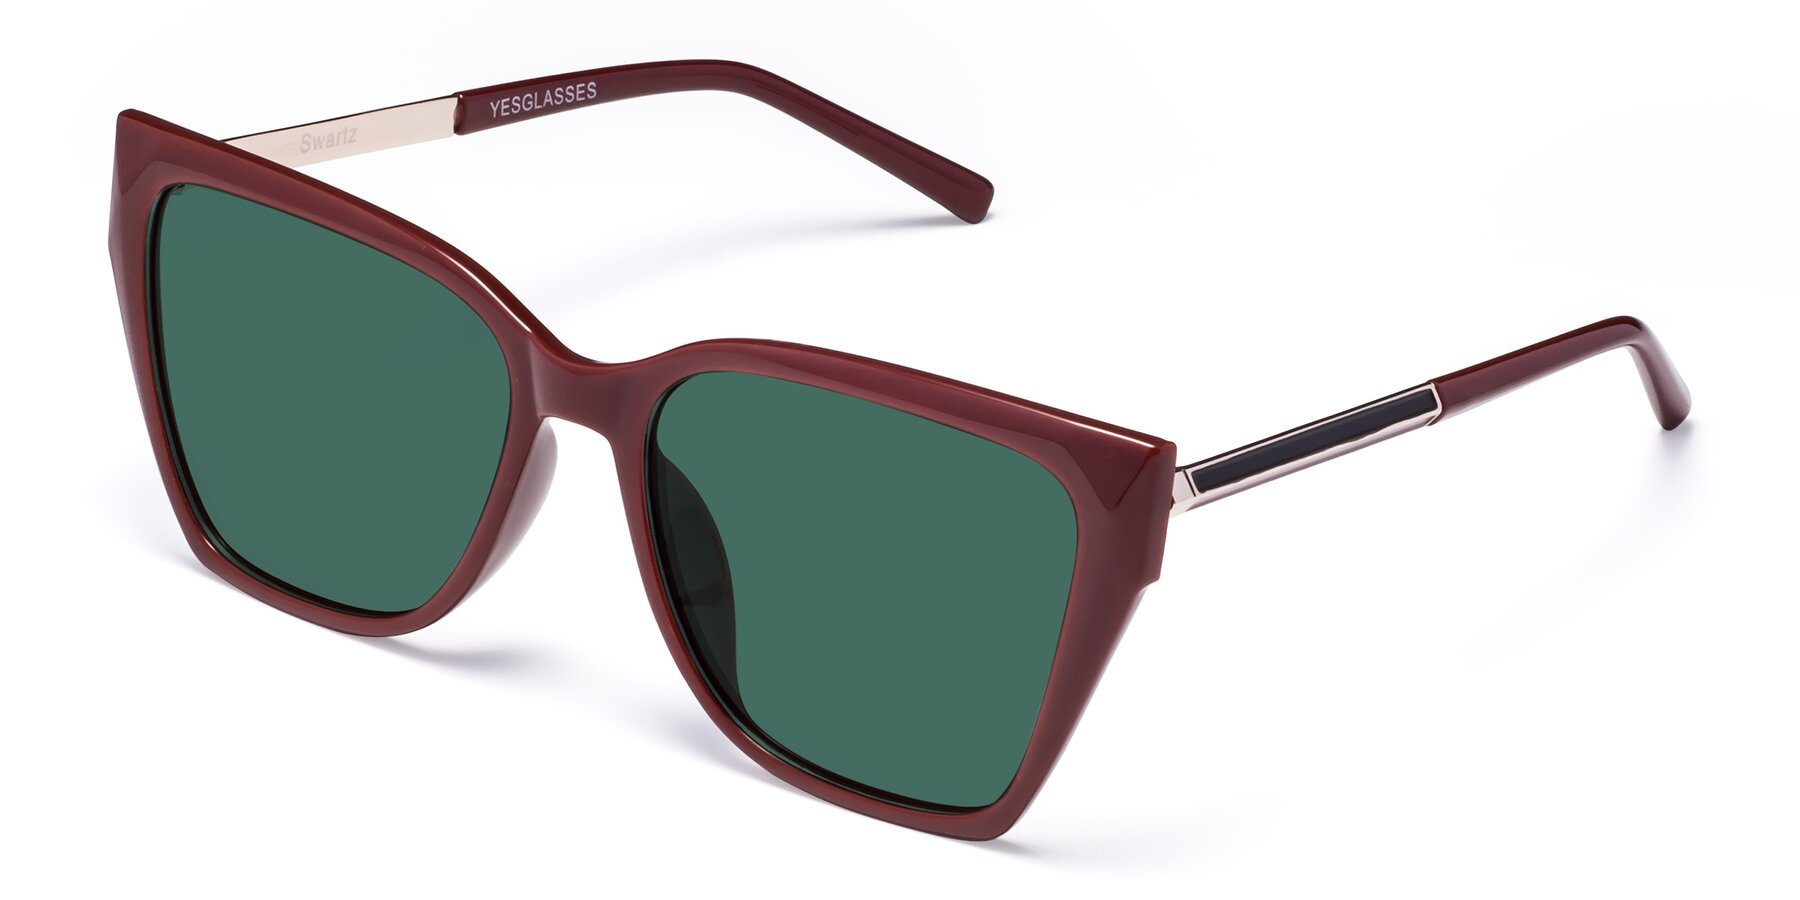 Angle of Swartz in Wine with Green Polarized Lenses